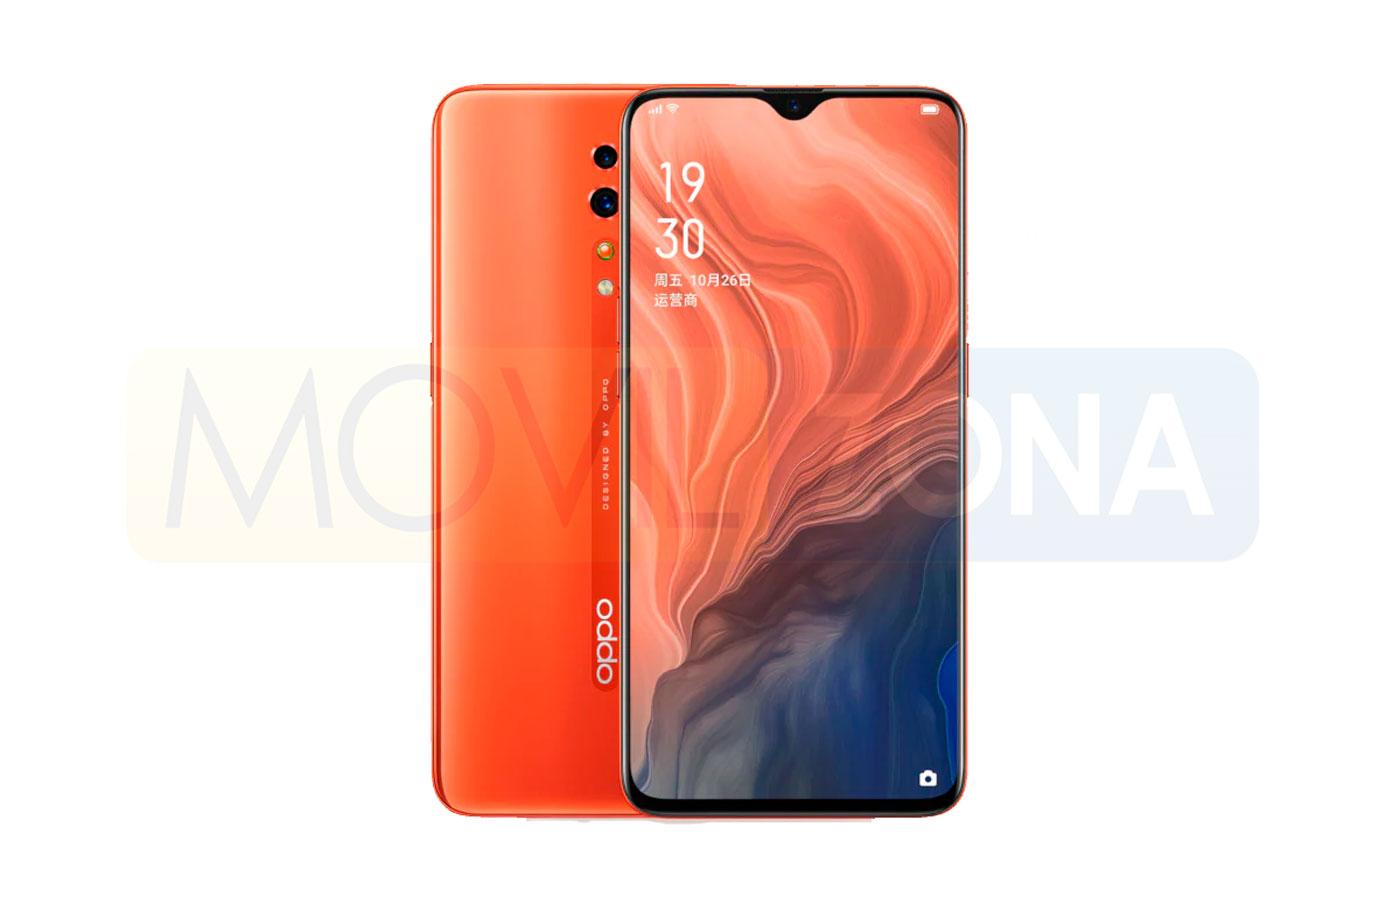 OPPO Reno Z color